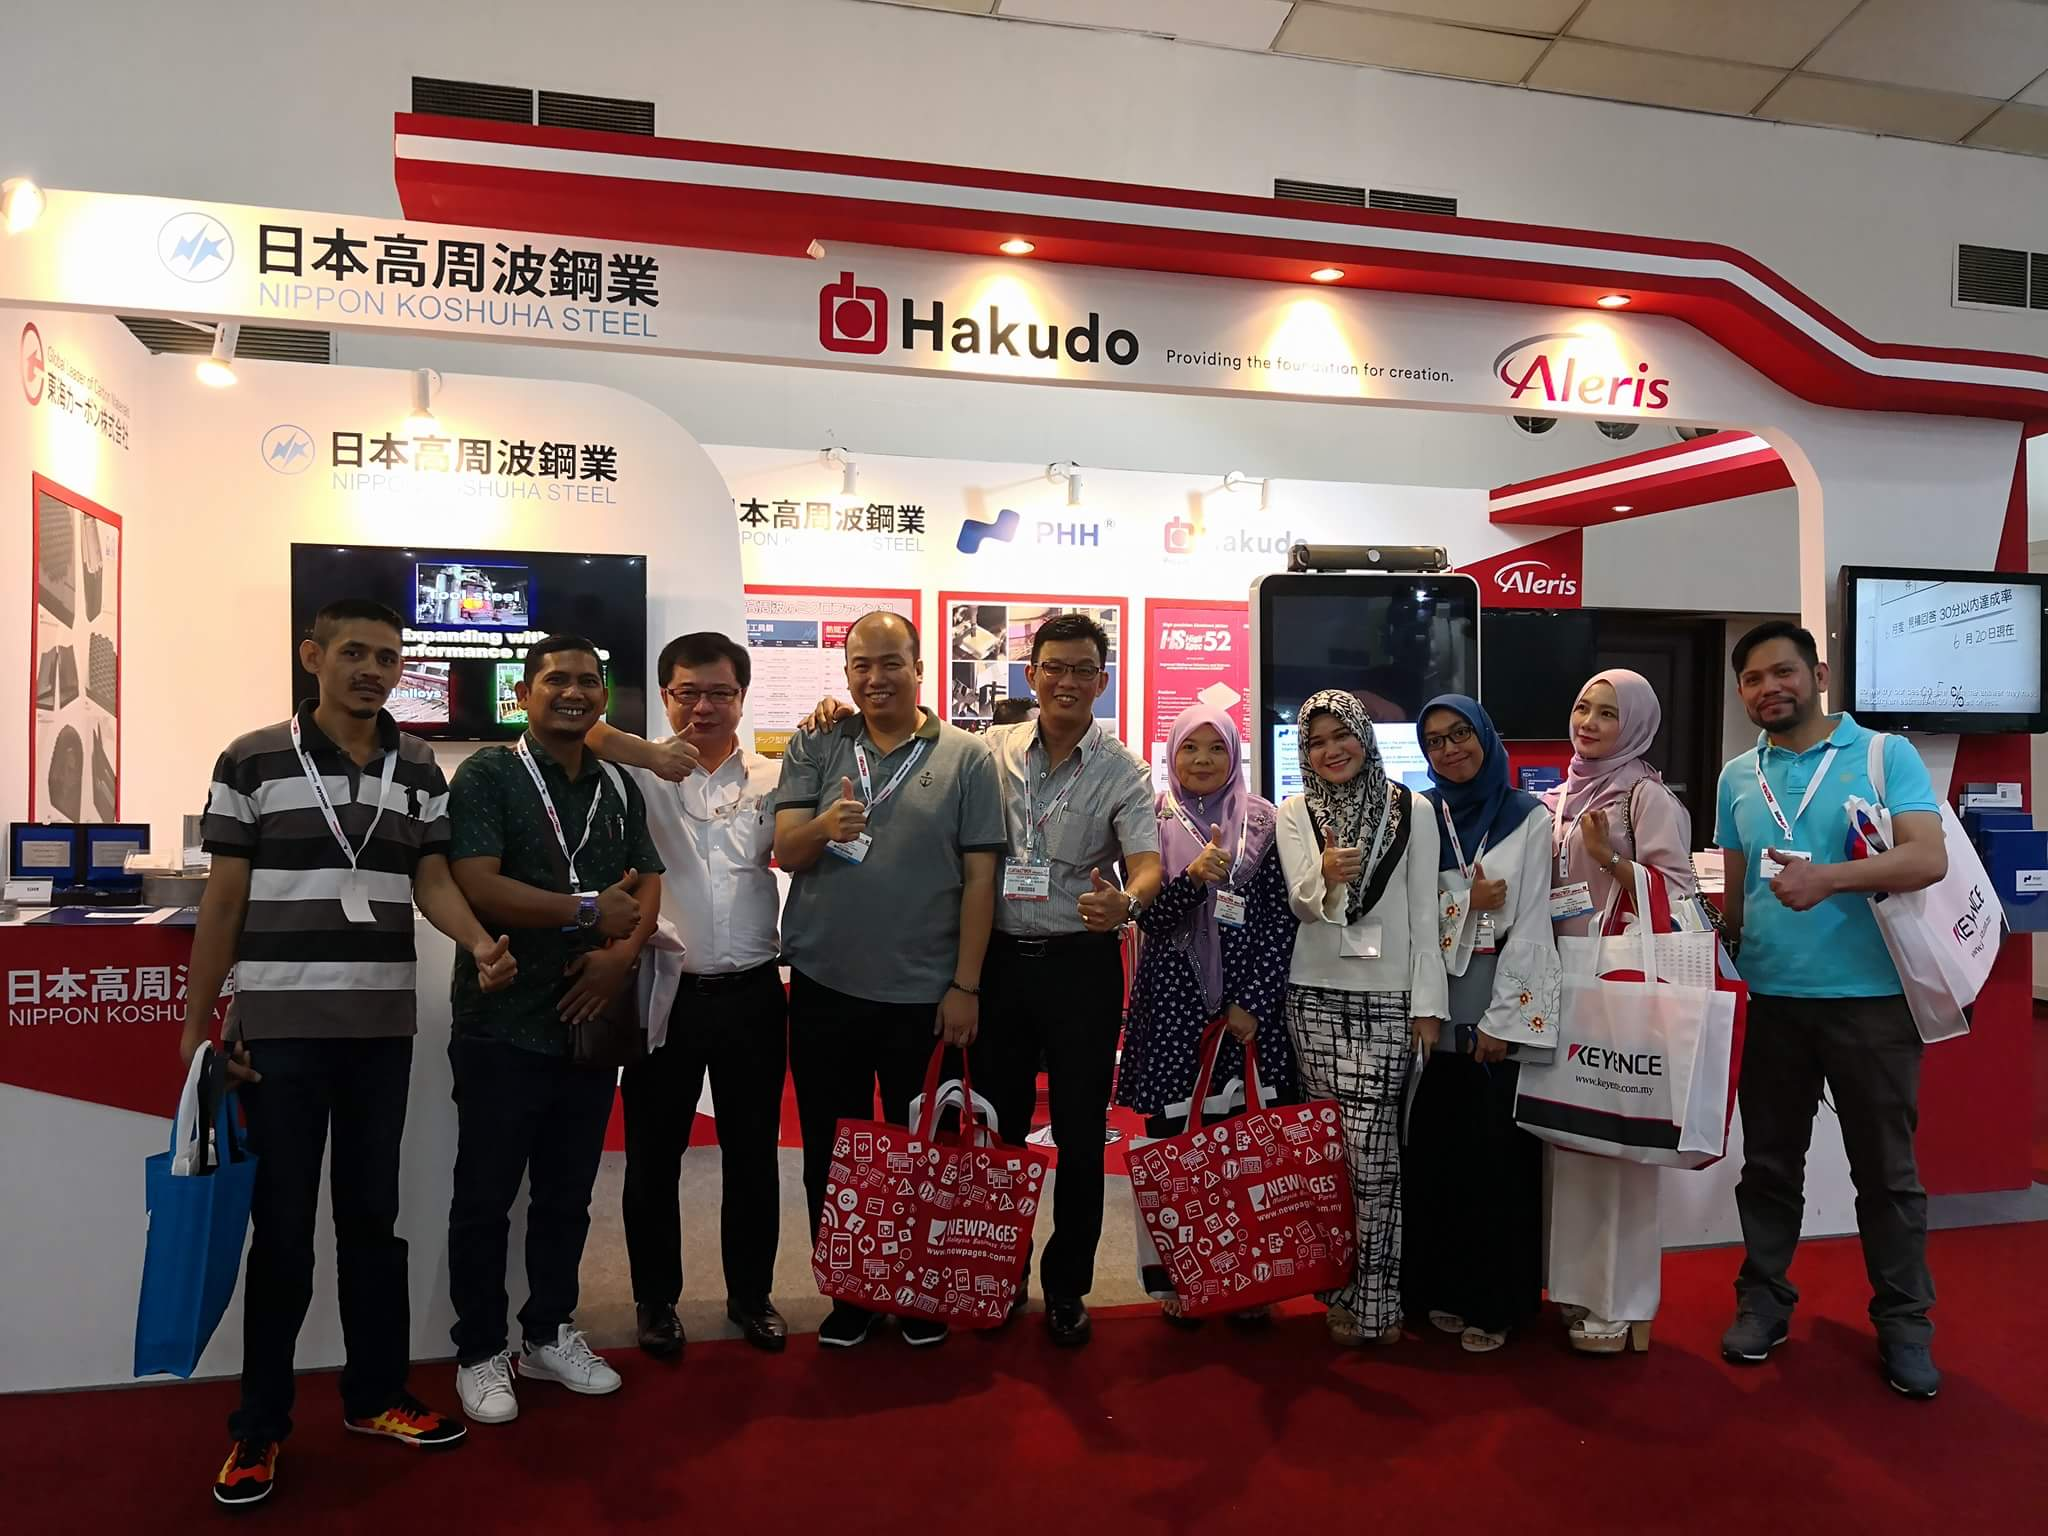 Exhibition Booth Rental Kuala Lumpur : Phh metal sdn bhd tool and die